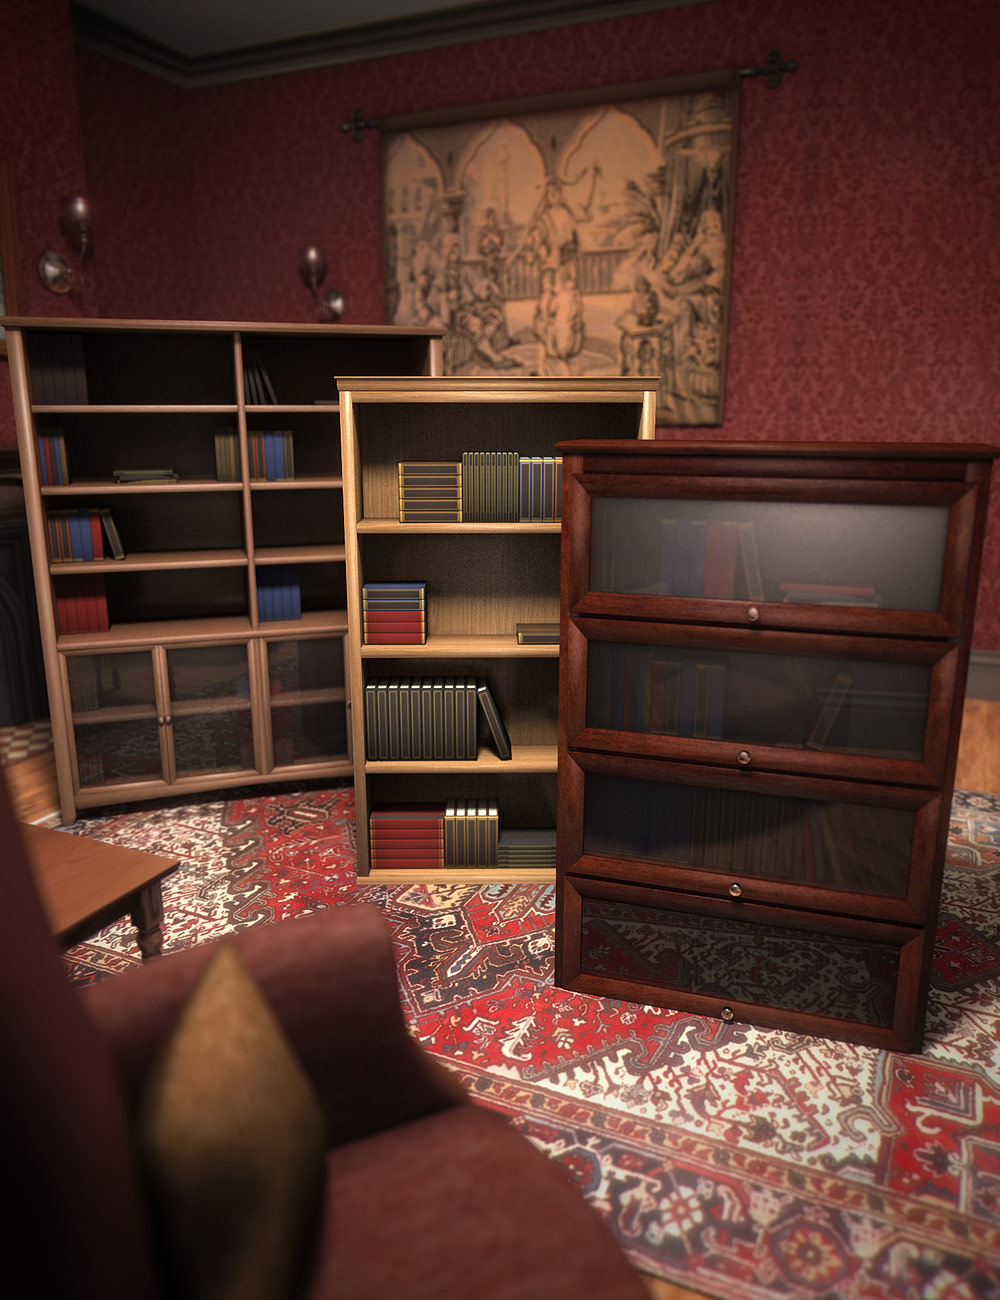 The Bookcase Collection by: ARTCollab, 3D Models by Daz 3D